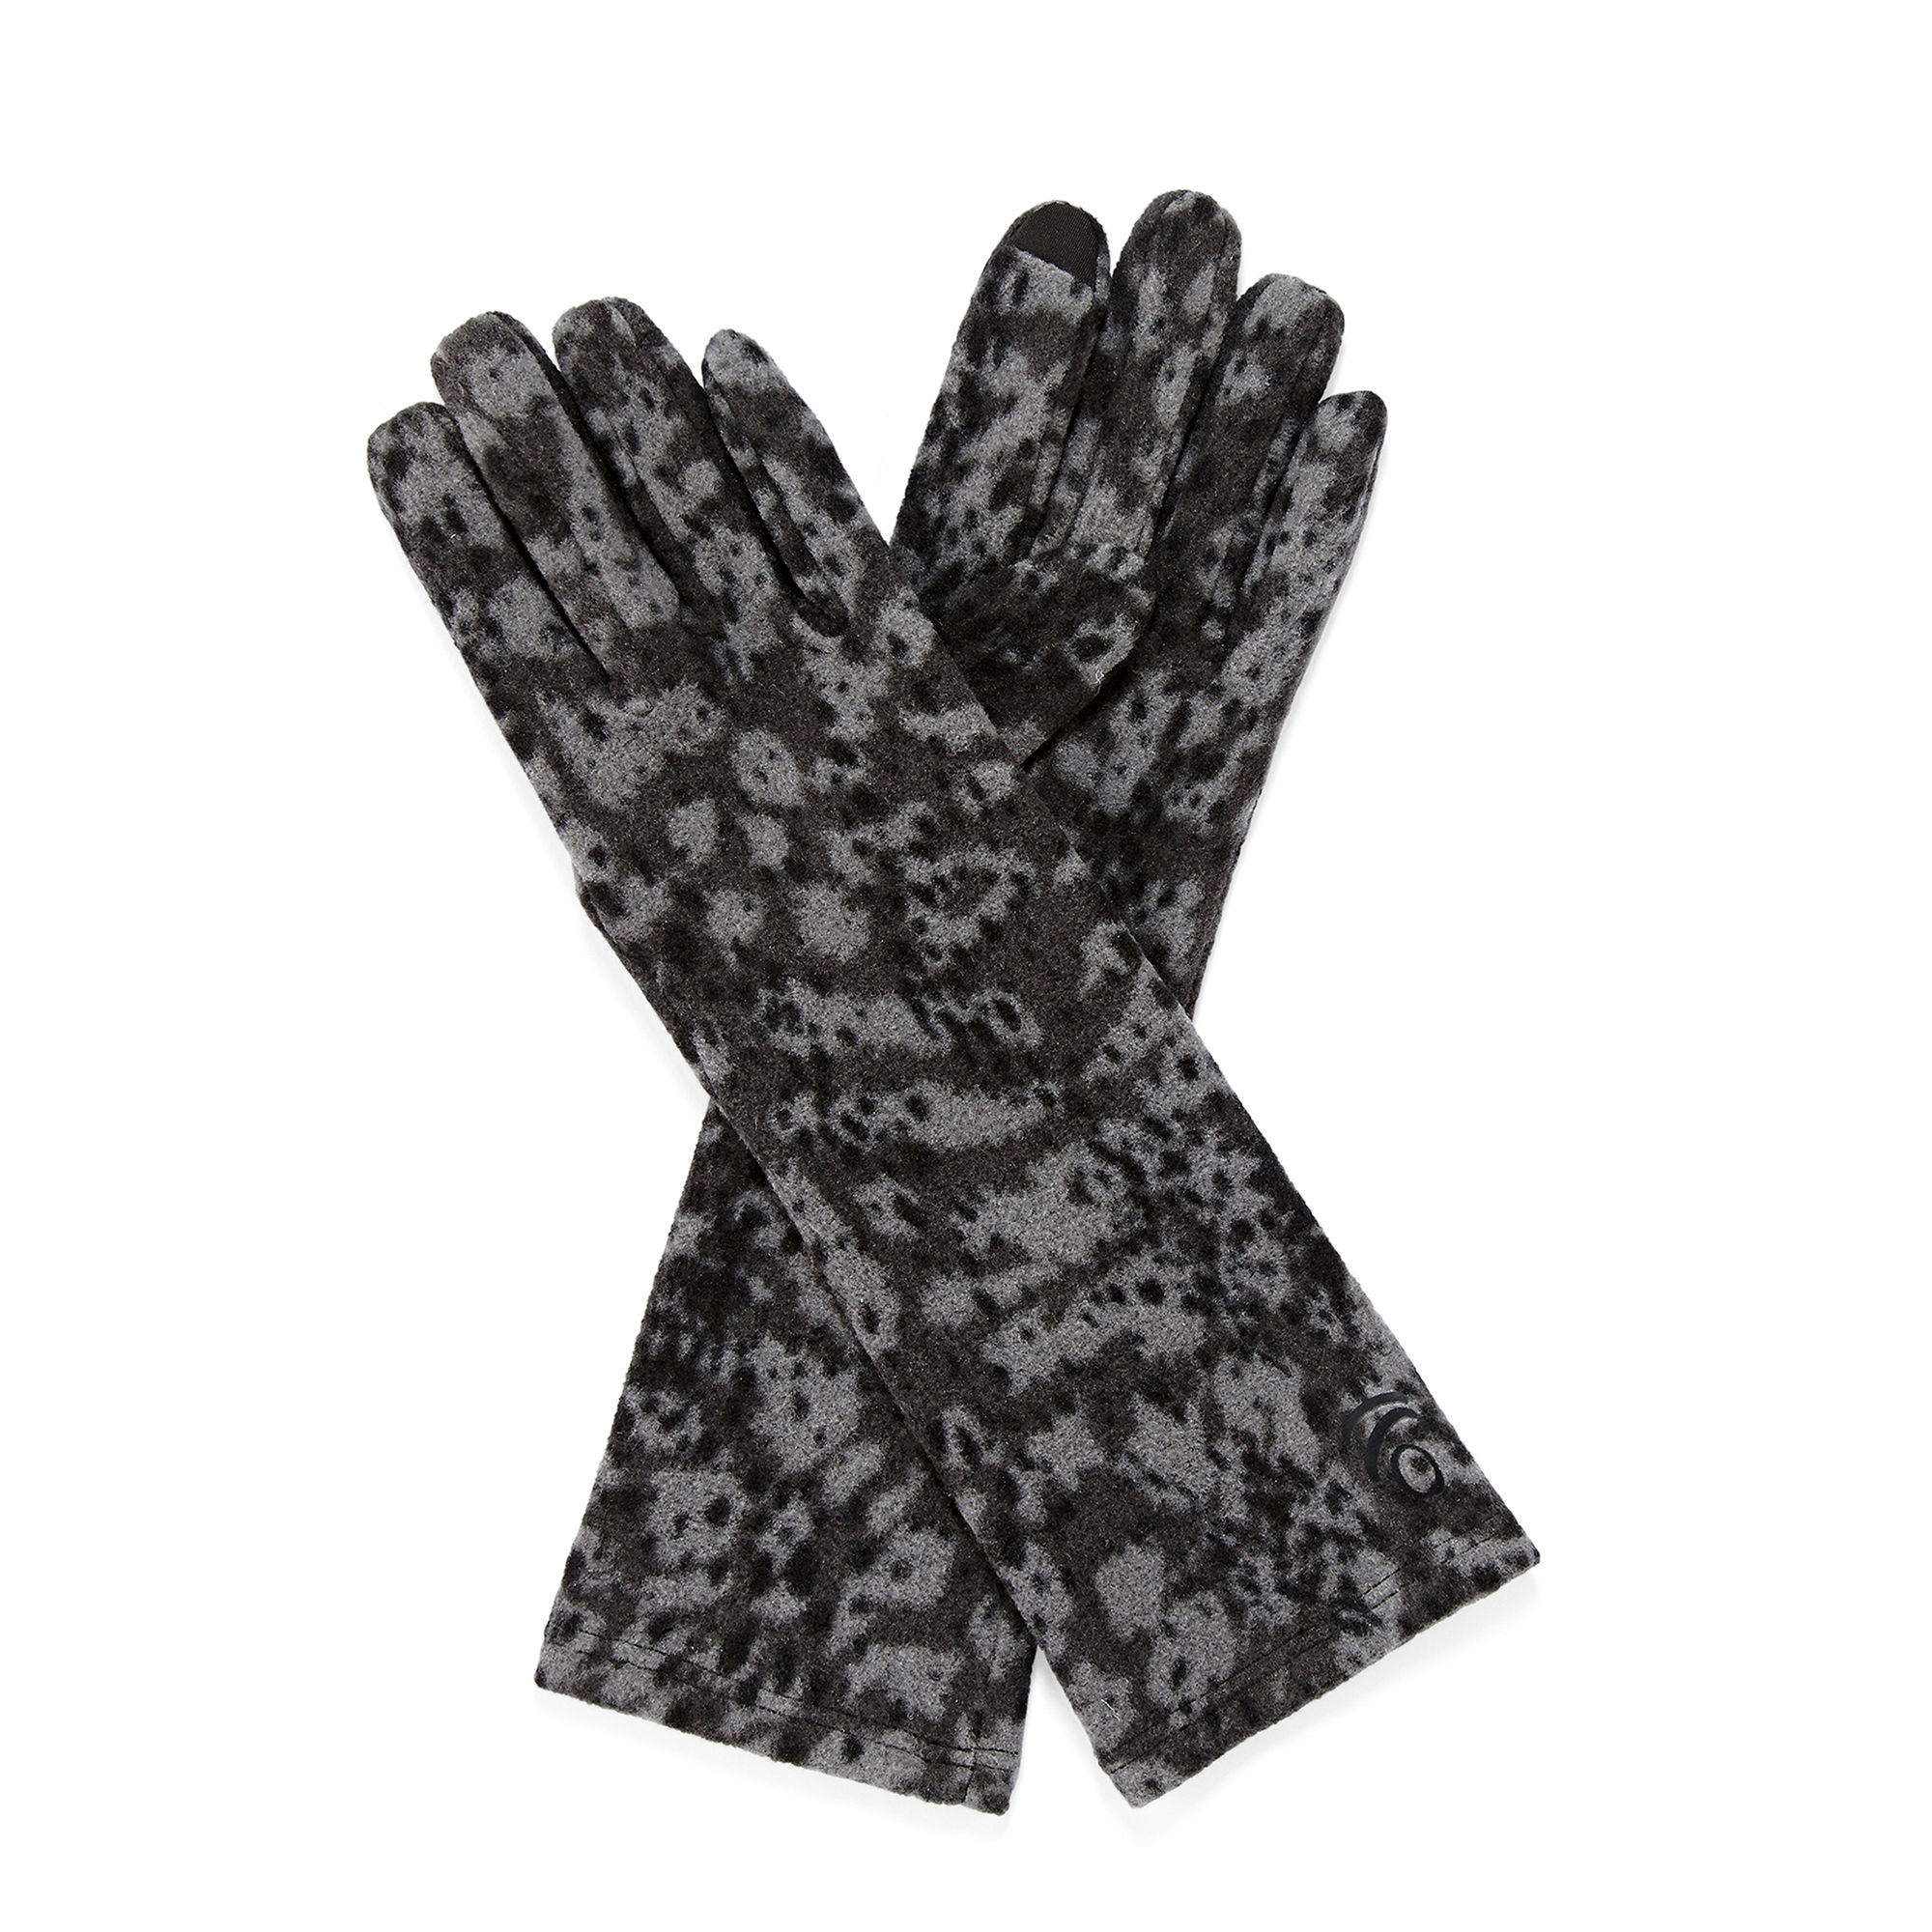 0092dc4be UPC 098617080607 product image for Cuddl Duds Fleece Gloves with Tech Tips  | upcitemdb.com ...